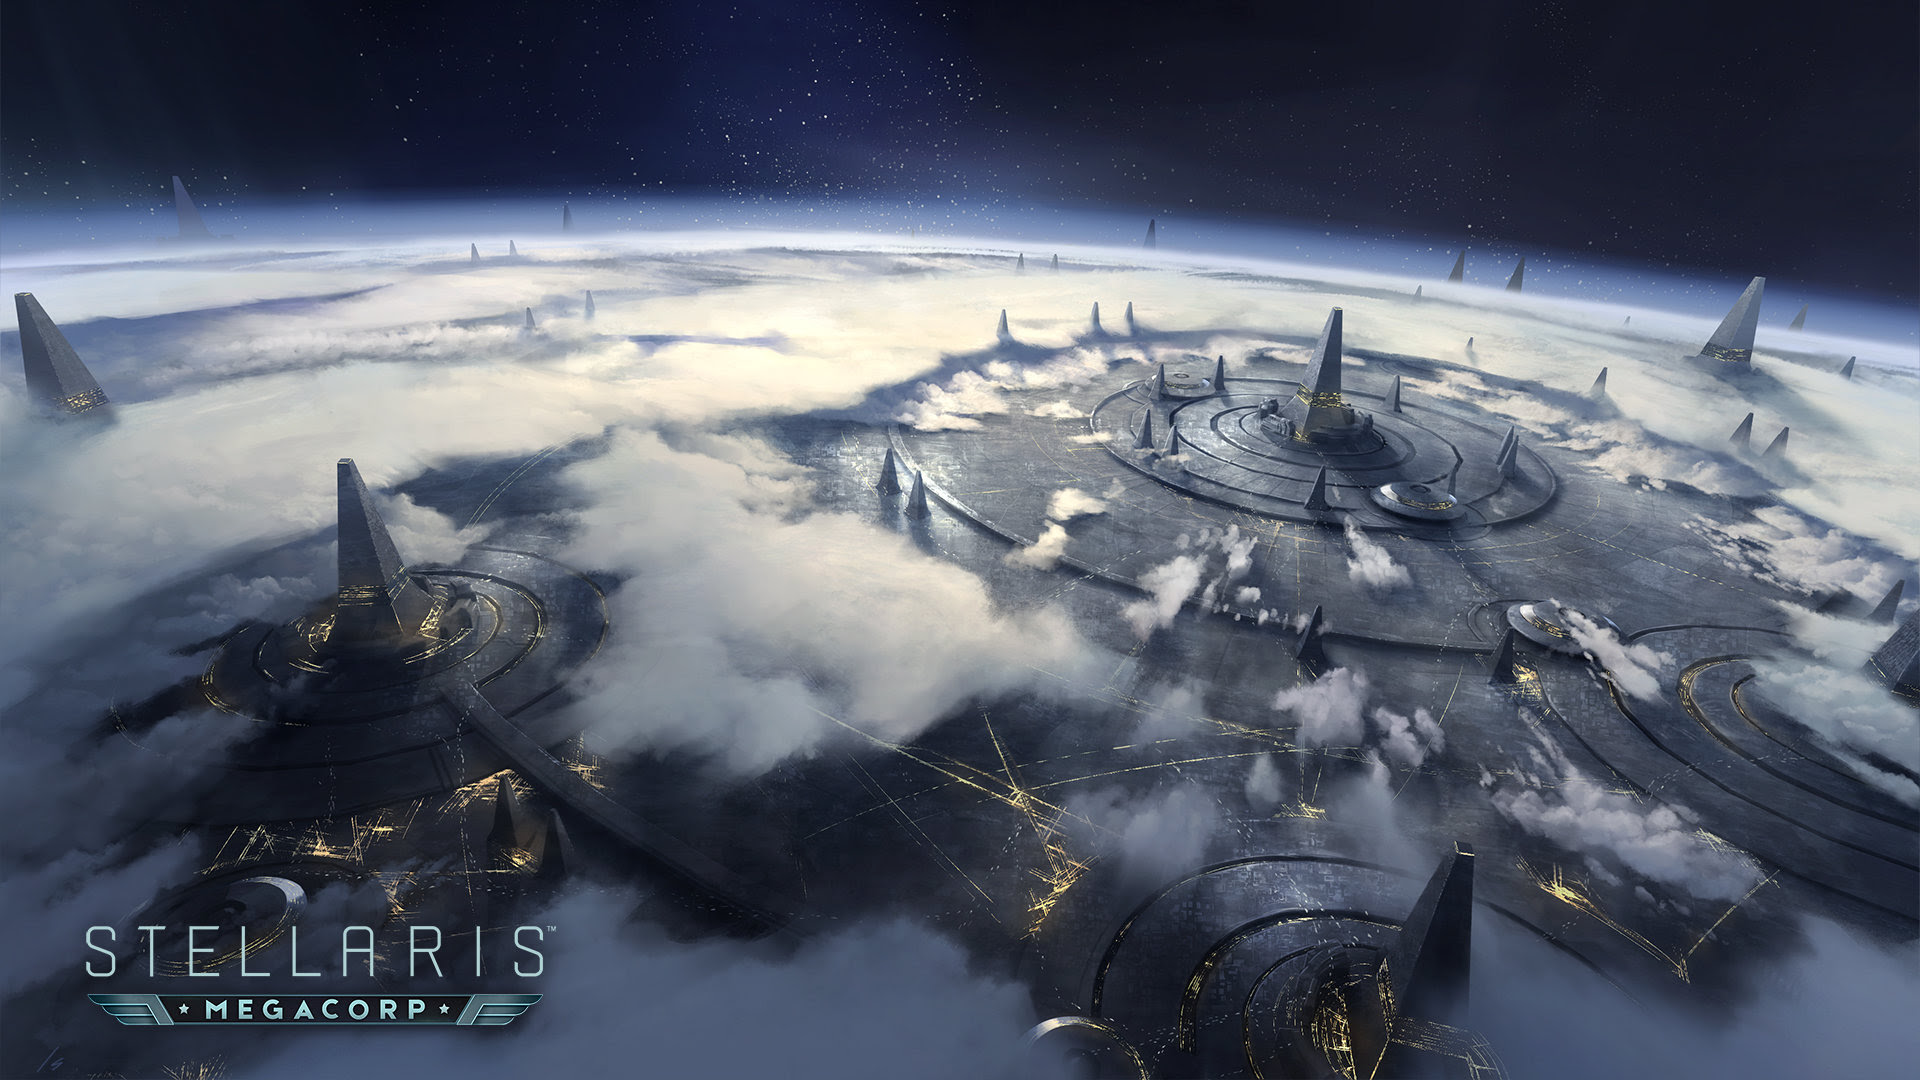 Stellaris reveals 'economy-focused' MegaCorp expansion